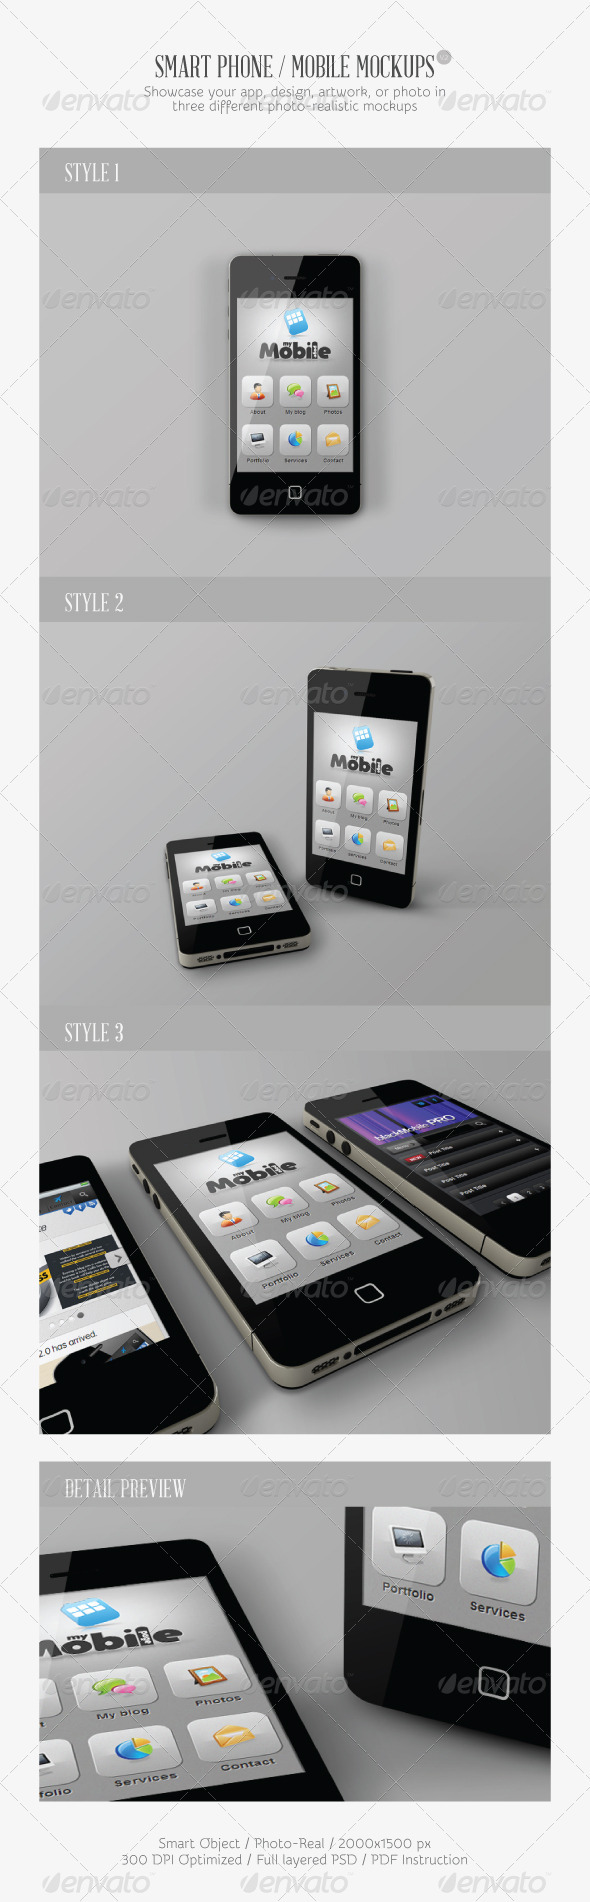 GraphicRiver Smart Phone Mobile Mock-ups V2 2601335